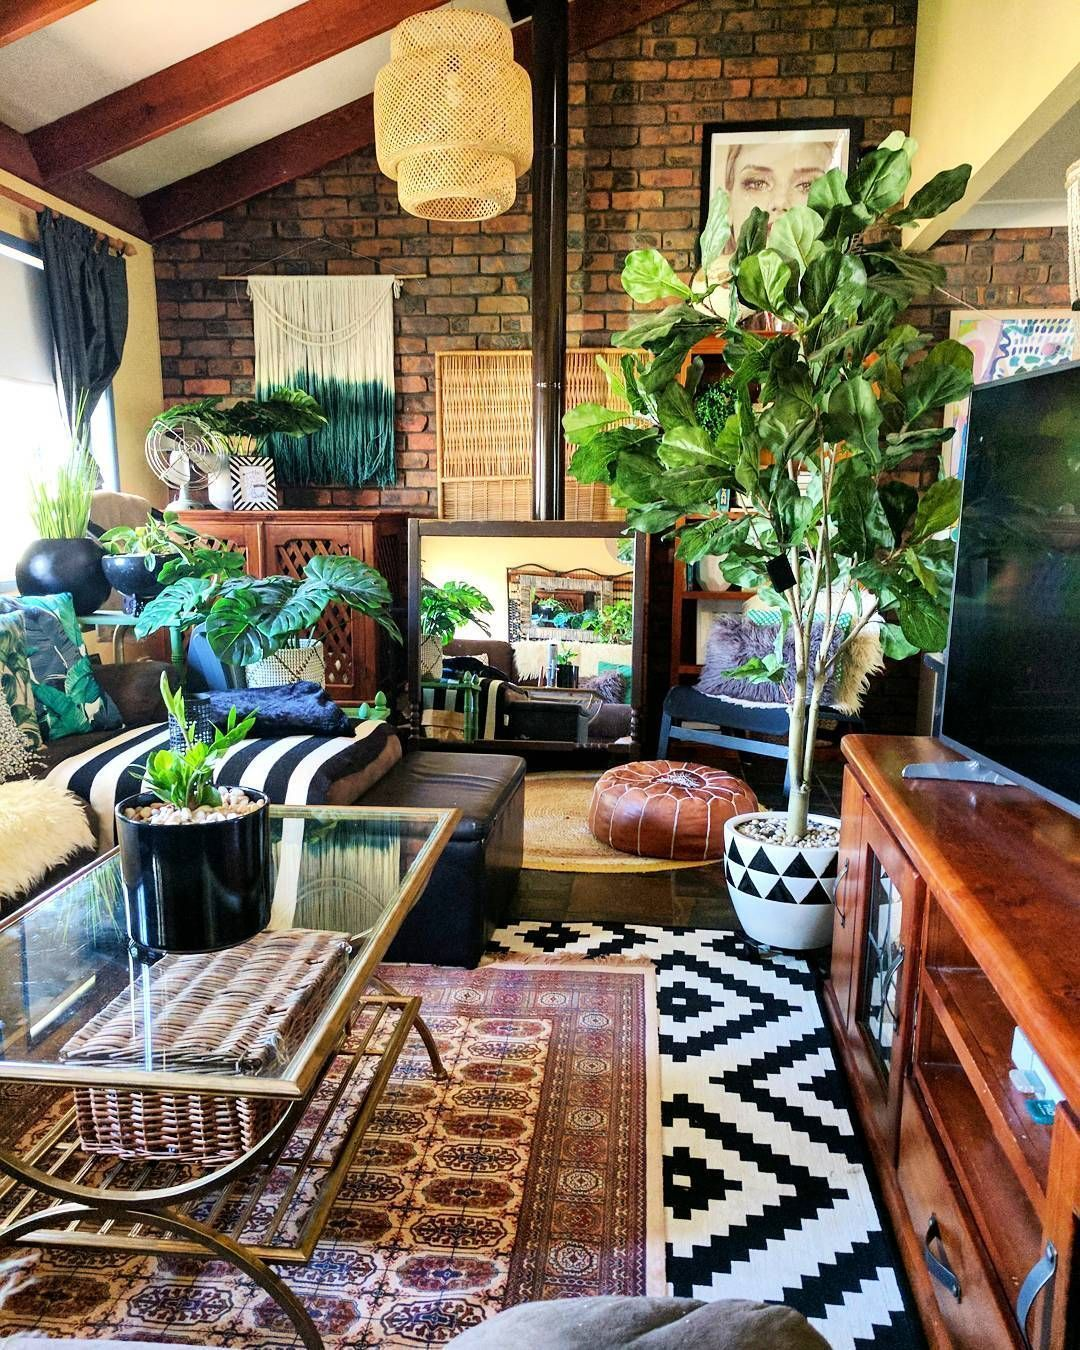 Simple Foliage Living Room Ideas For Summer That Make Coolest House 66